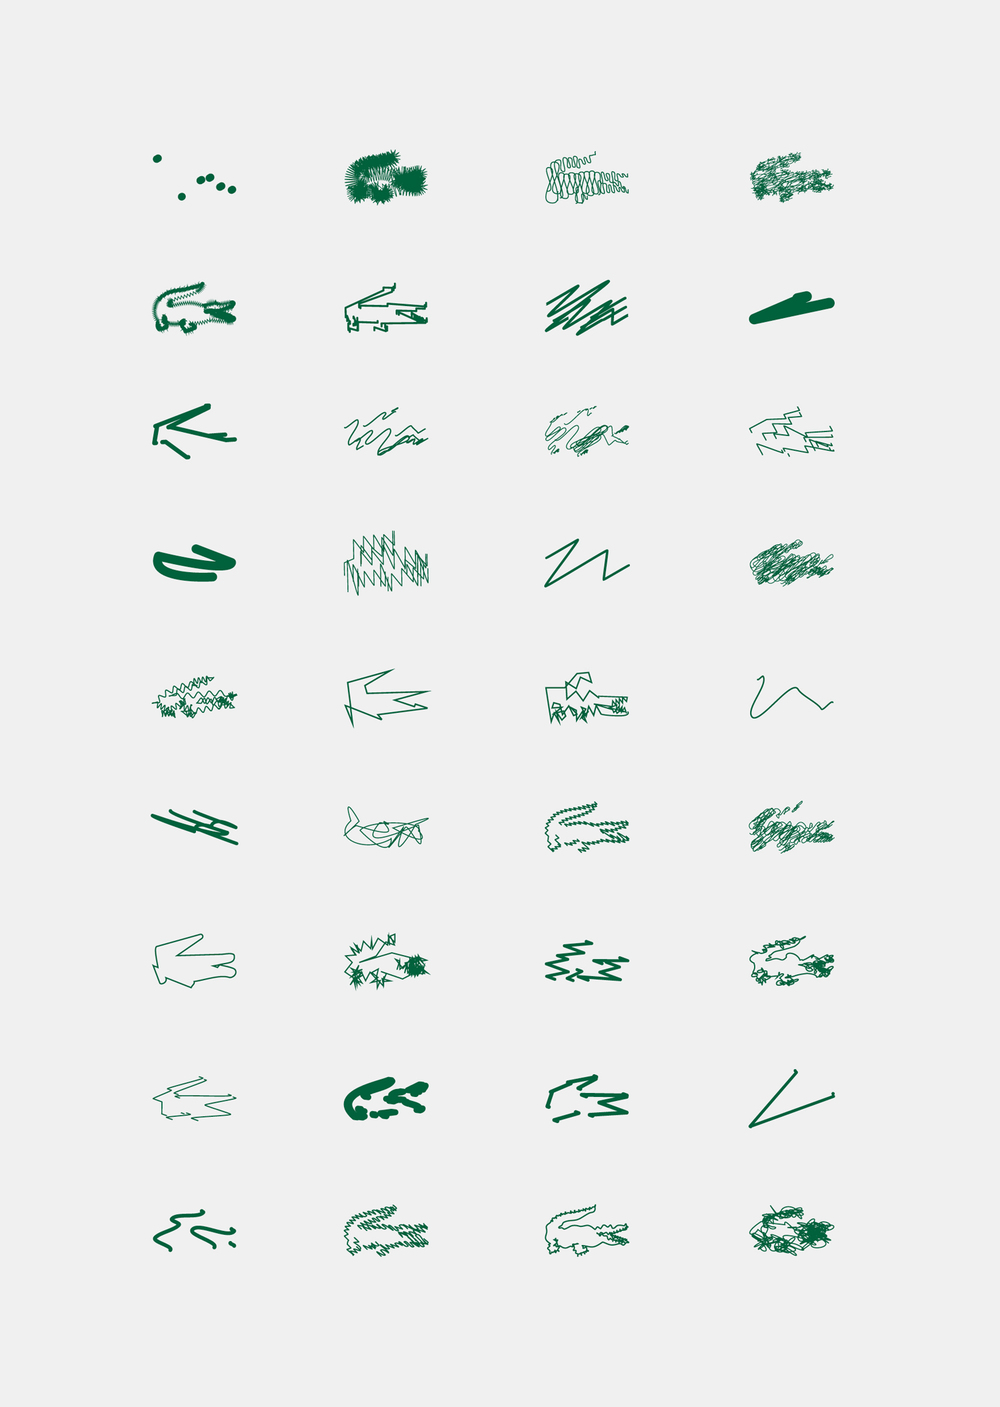 Lacoste by Peter Saville